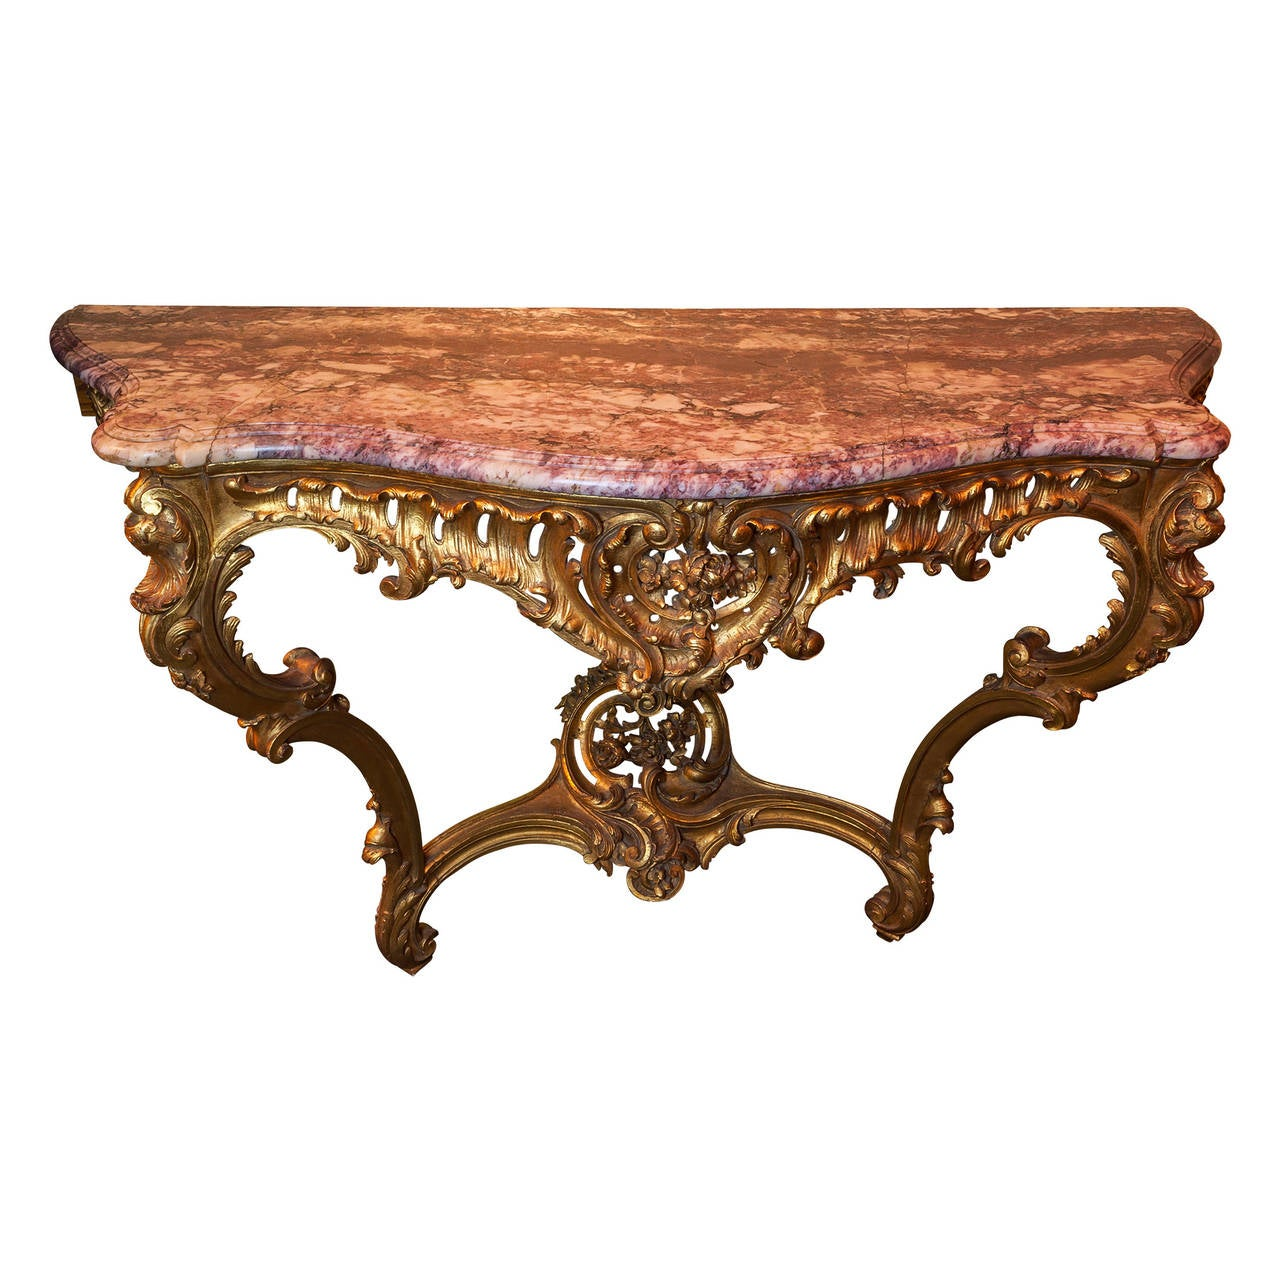 French louis xv style giltwood and marble top console table for sale at 1stdibs - Table louis xv ...